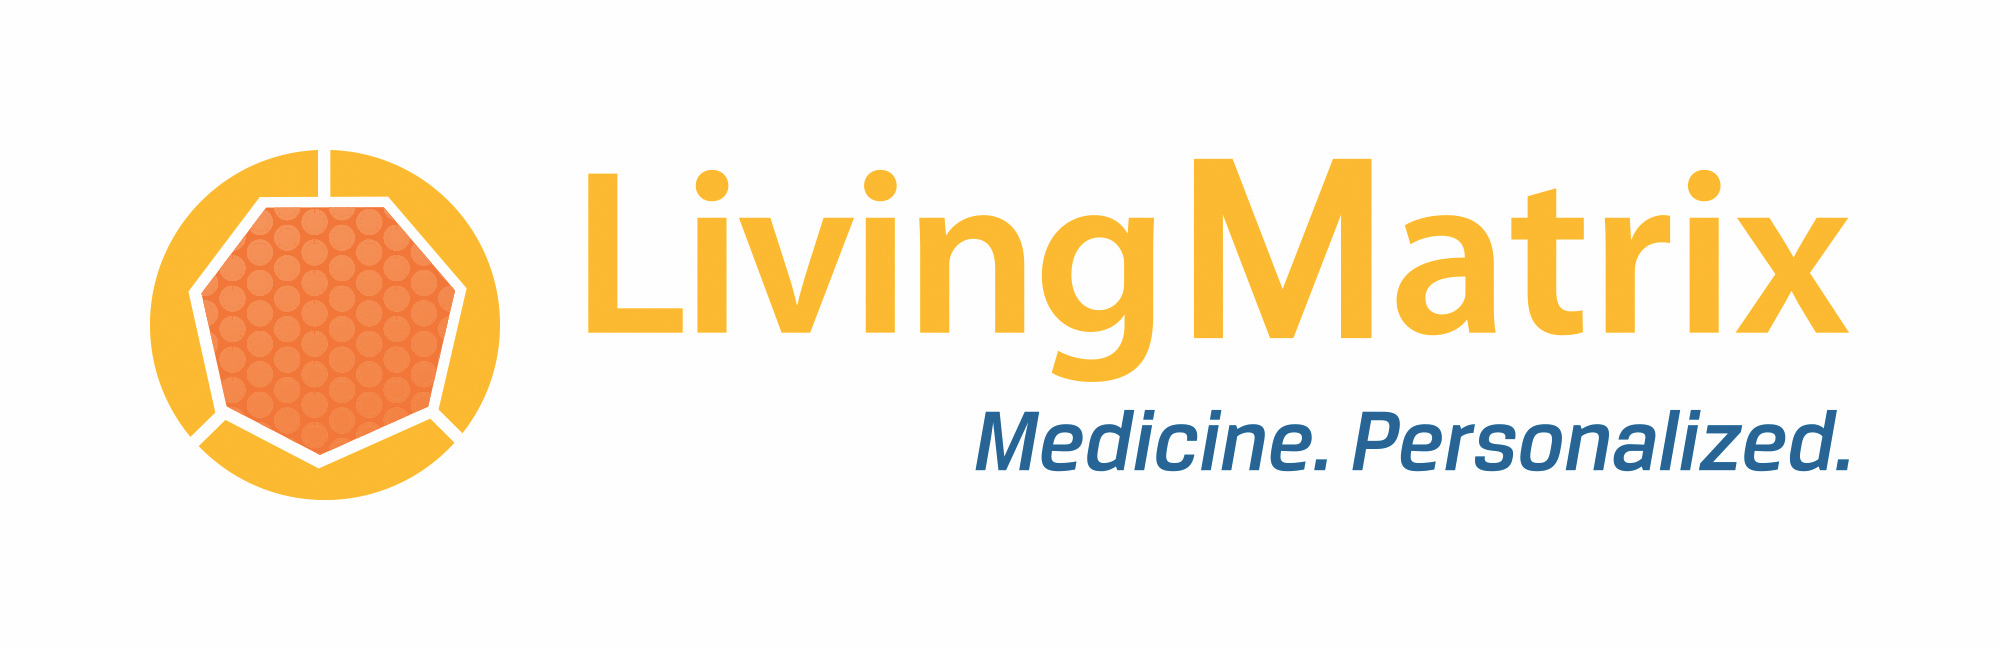 IFM AFMCP (Applying Functional Medicine in Clinical Practice